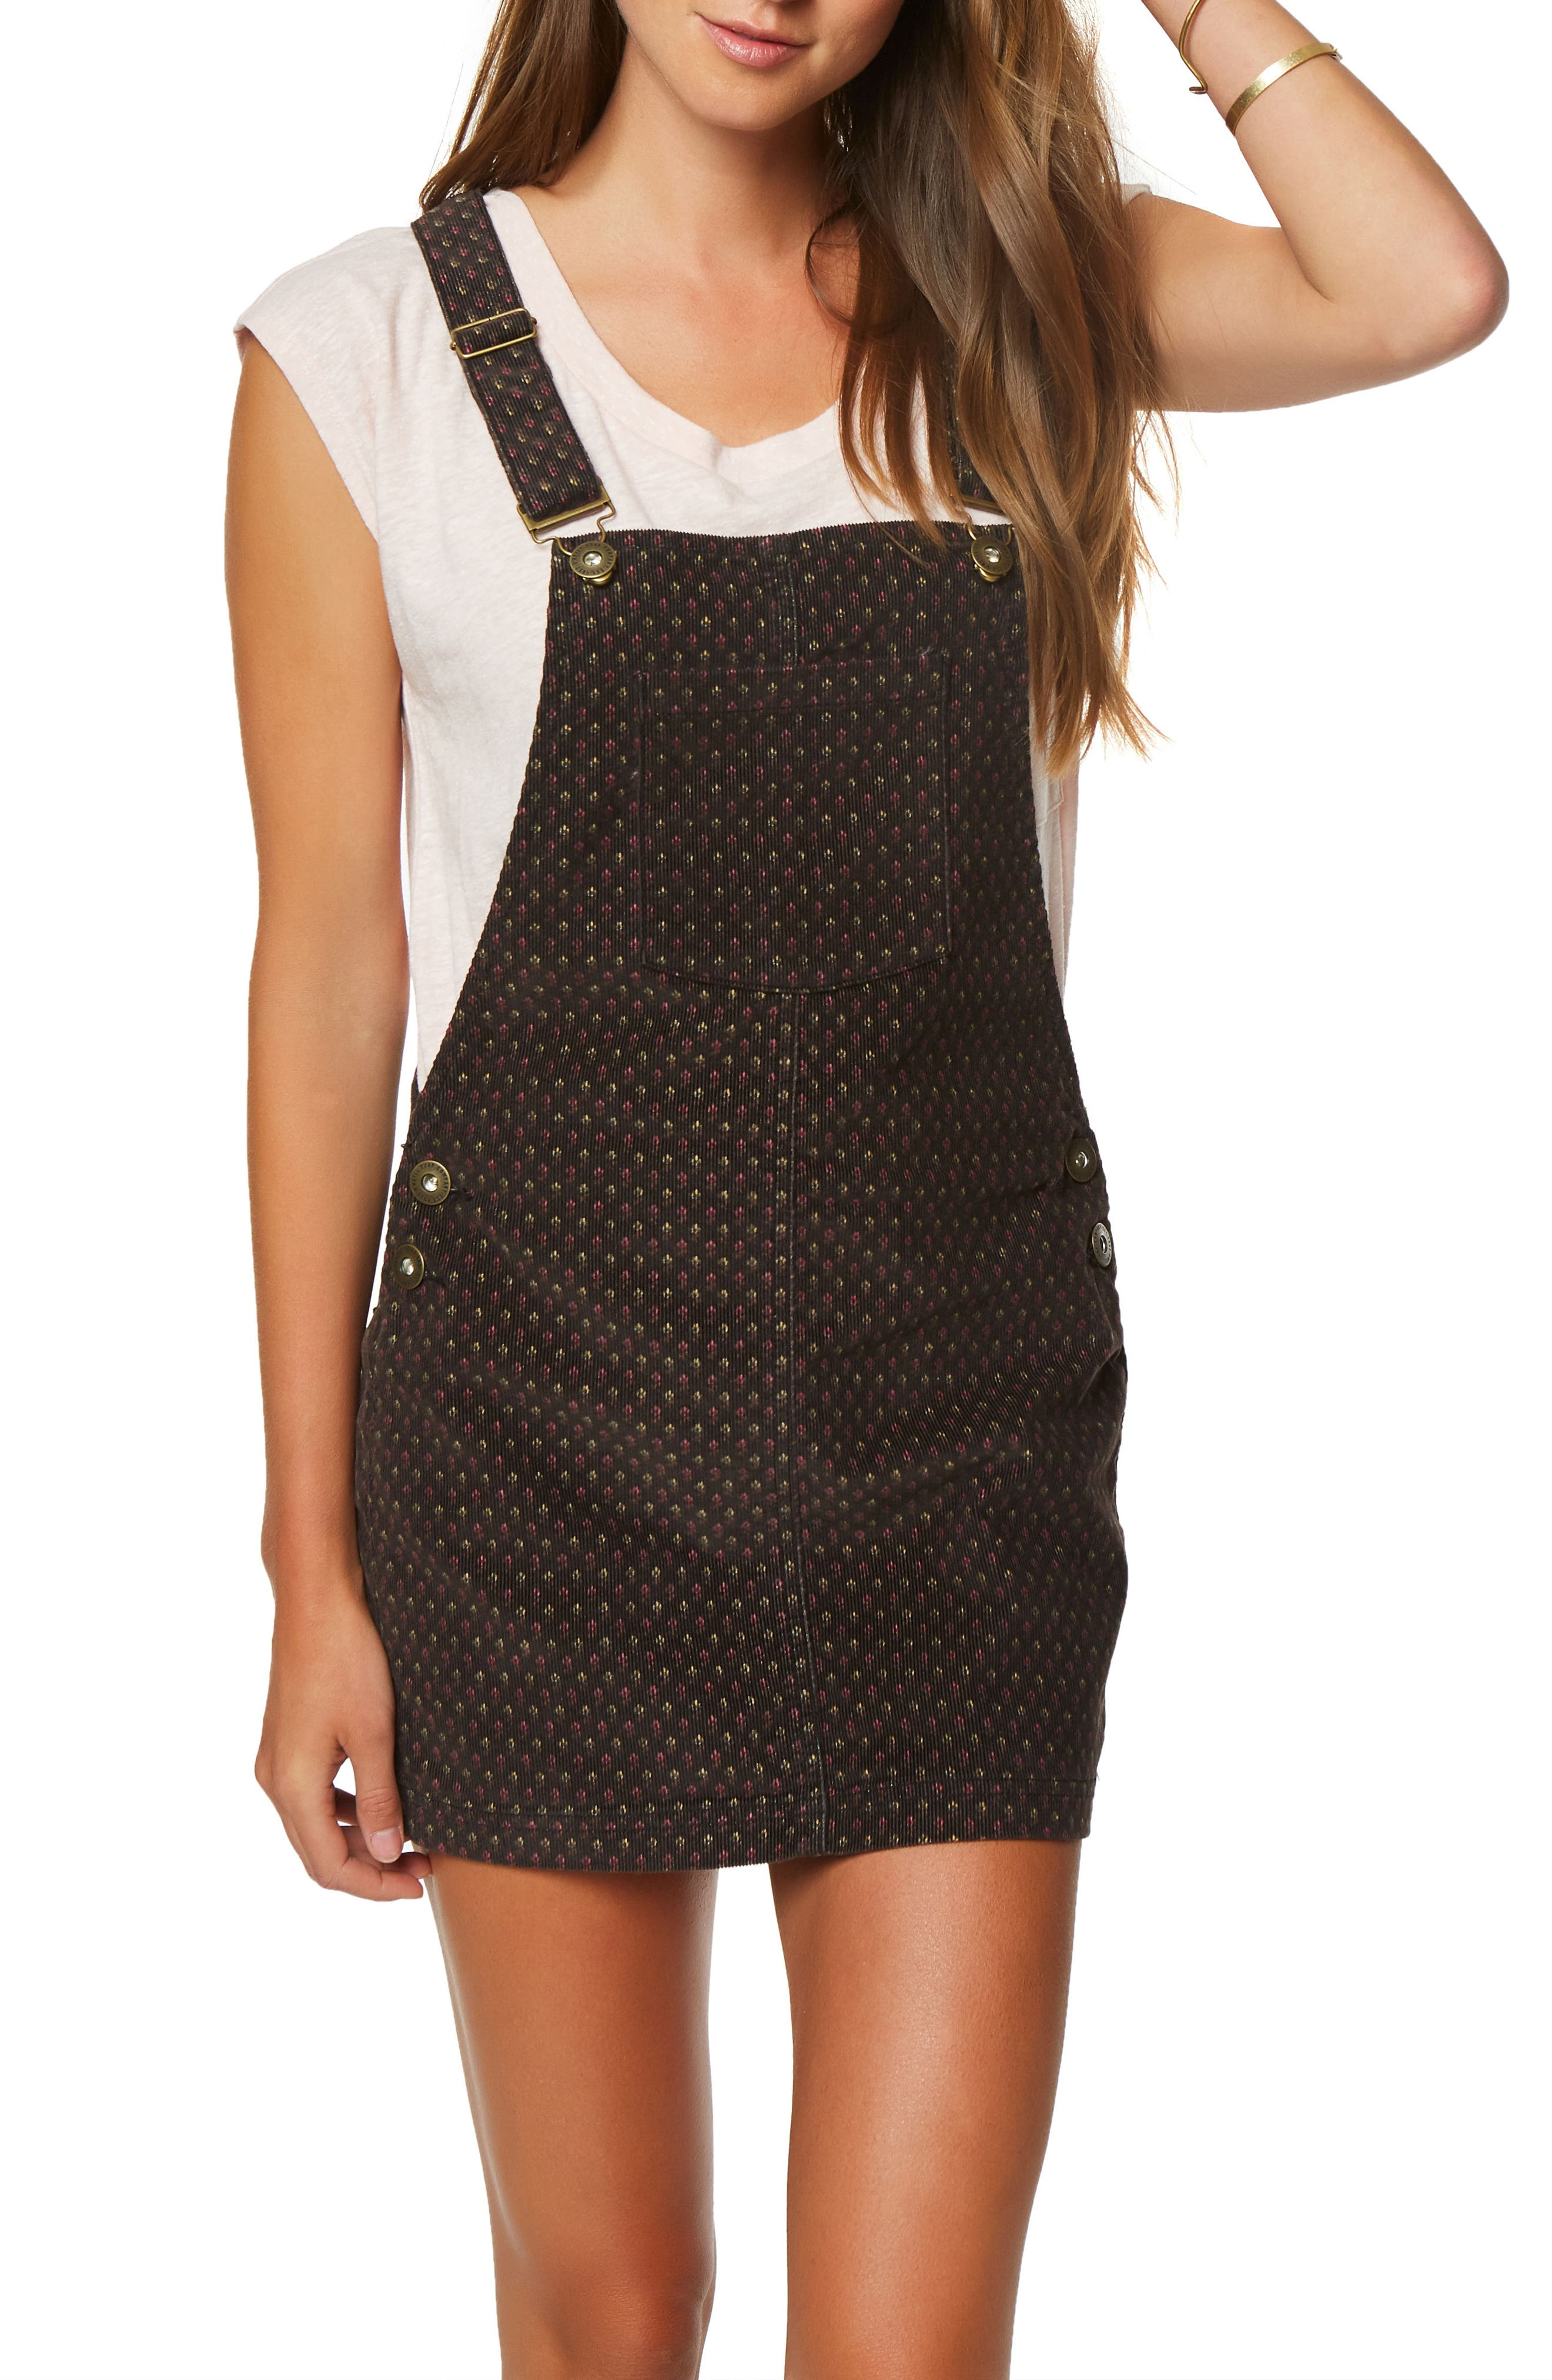 Kipling Print Corduroy Pinafore Dress,                         Main,                         color, Black